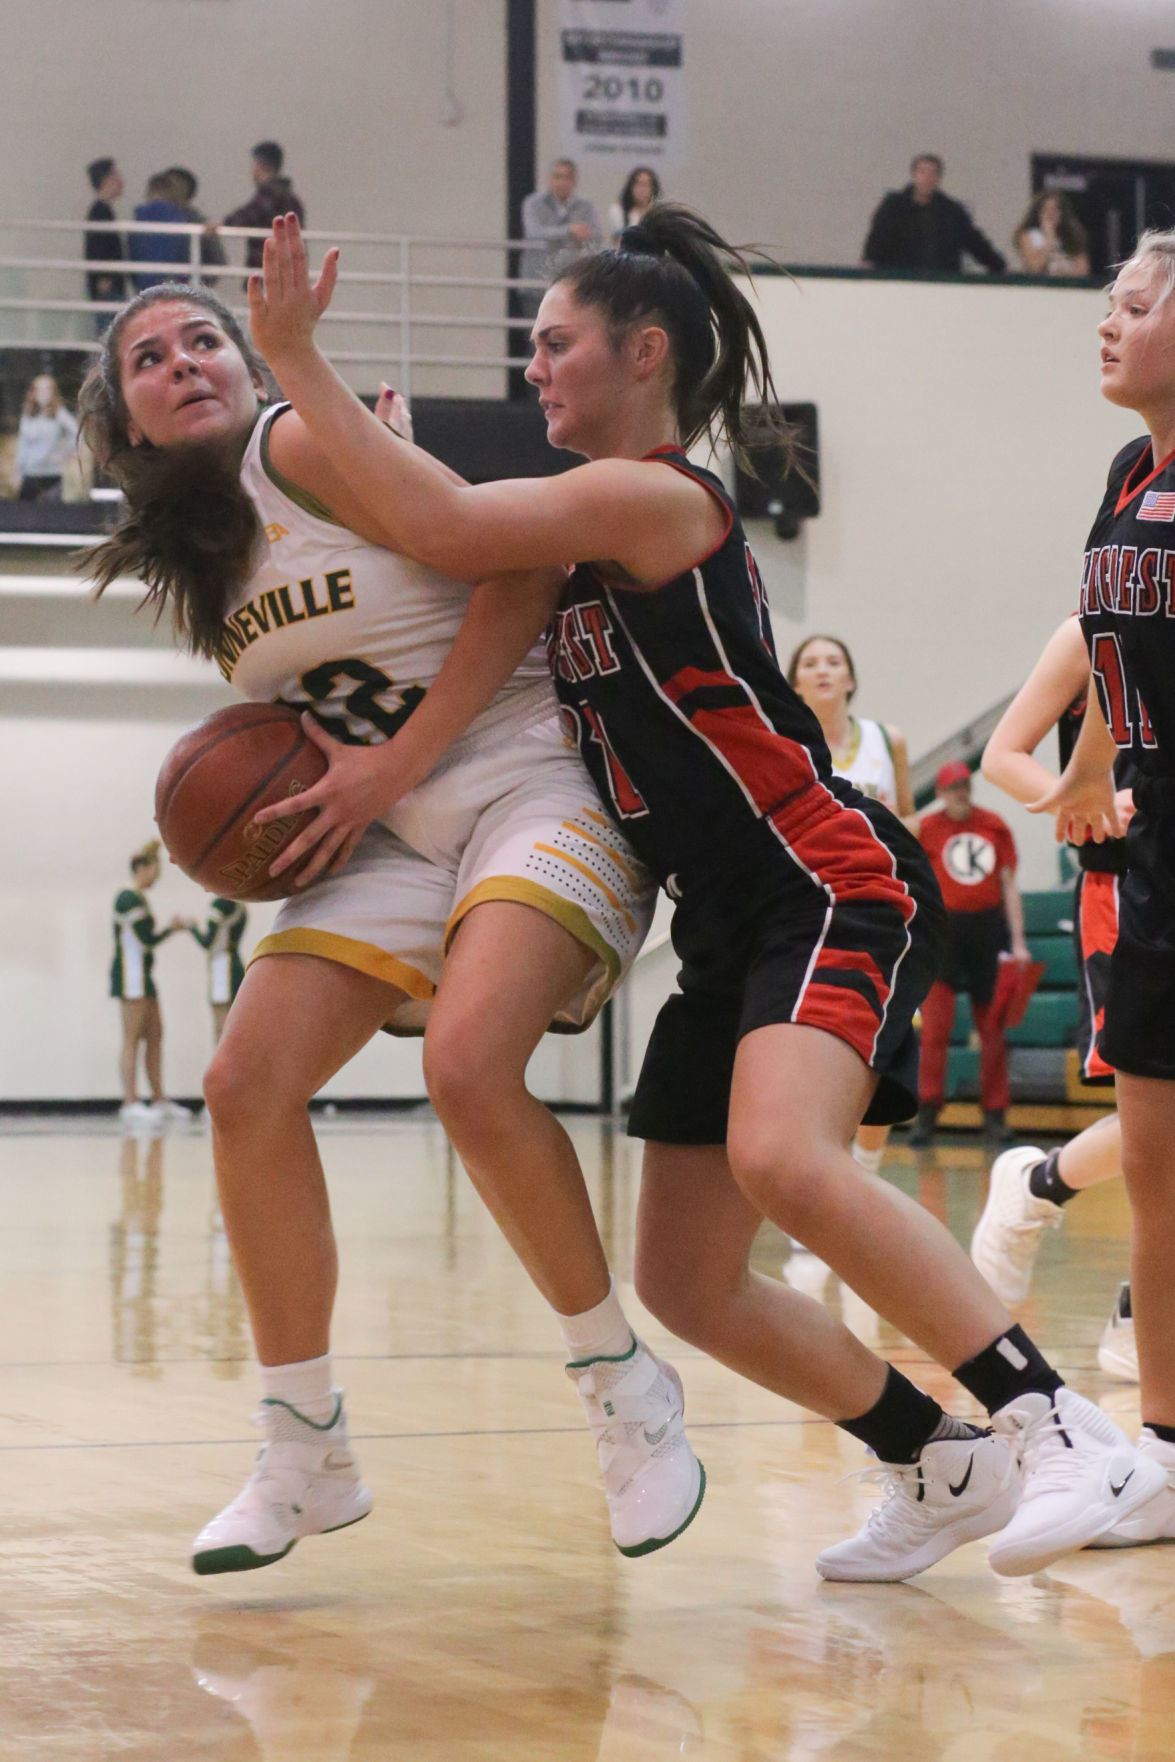 Bonneville vs Hillcrest girls basketball